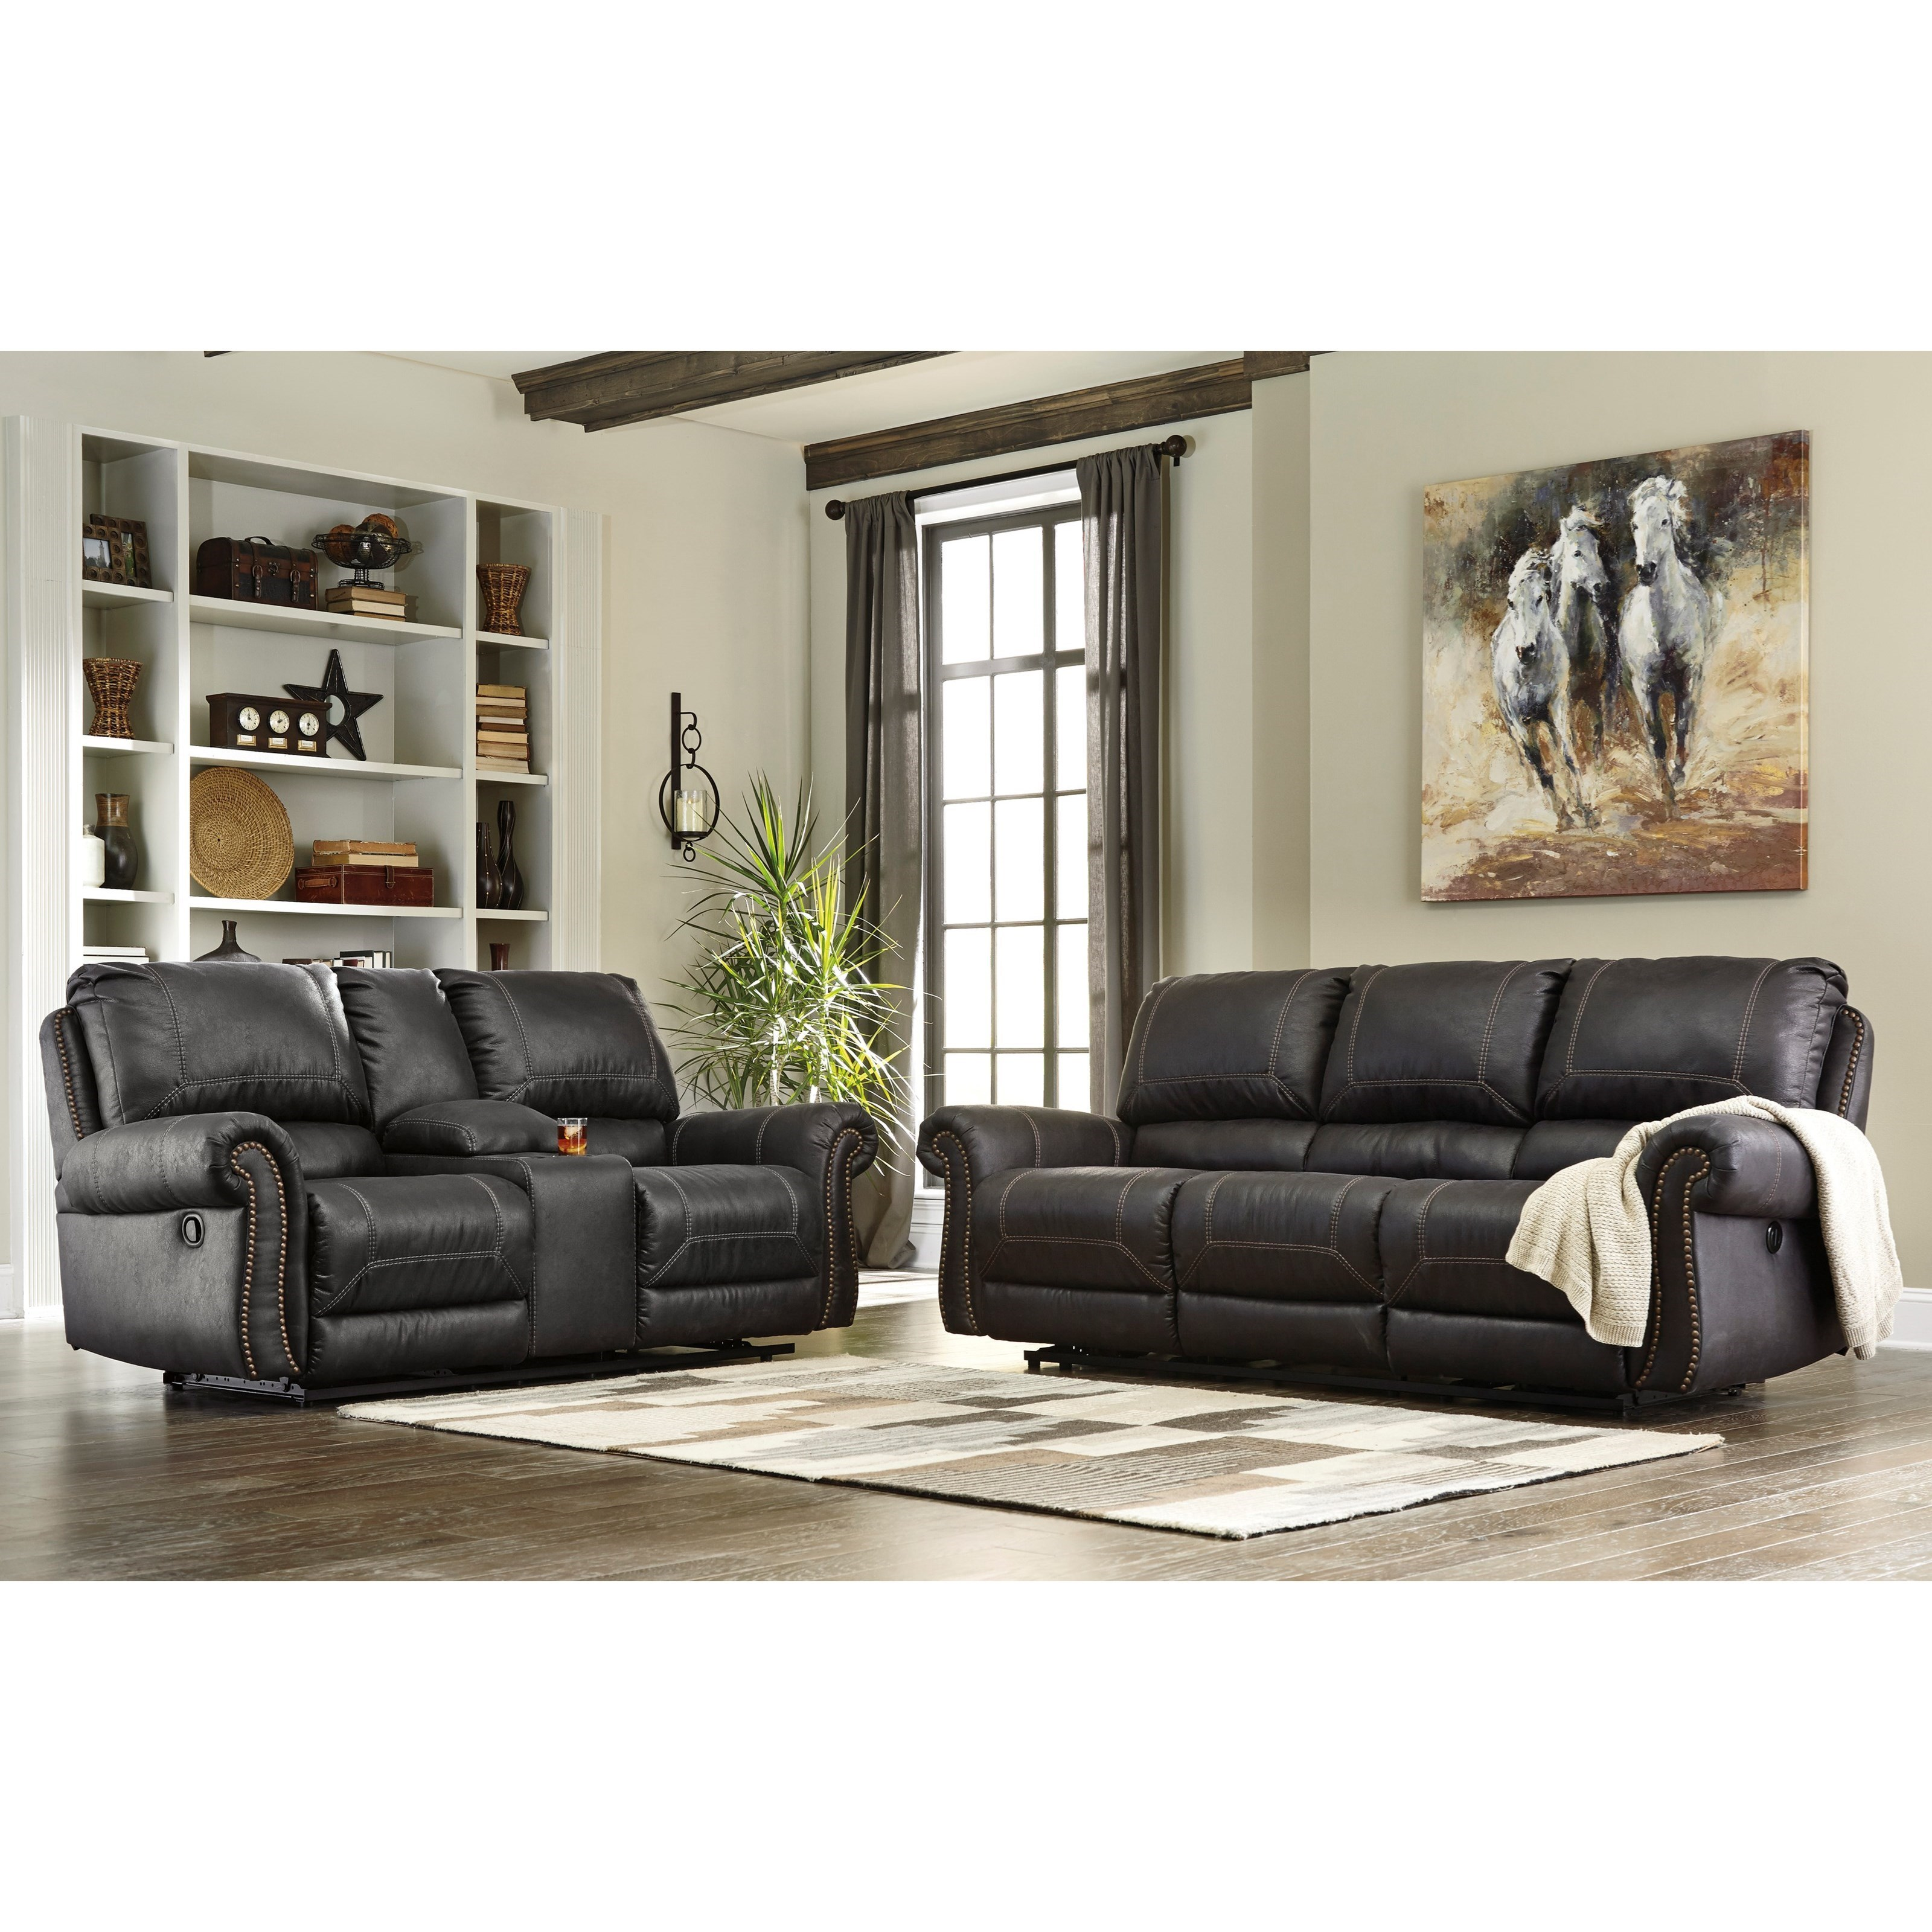 Signature Design by Ashley Milhaven Reclining Living Room Group